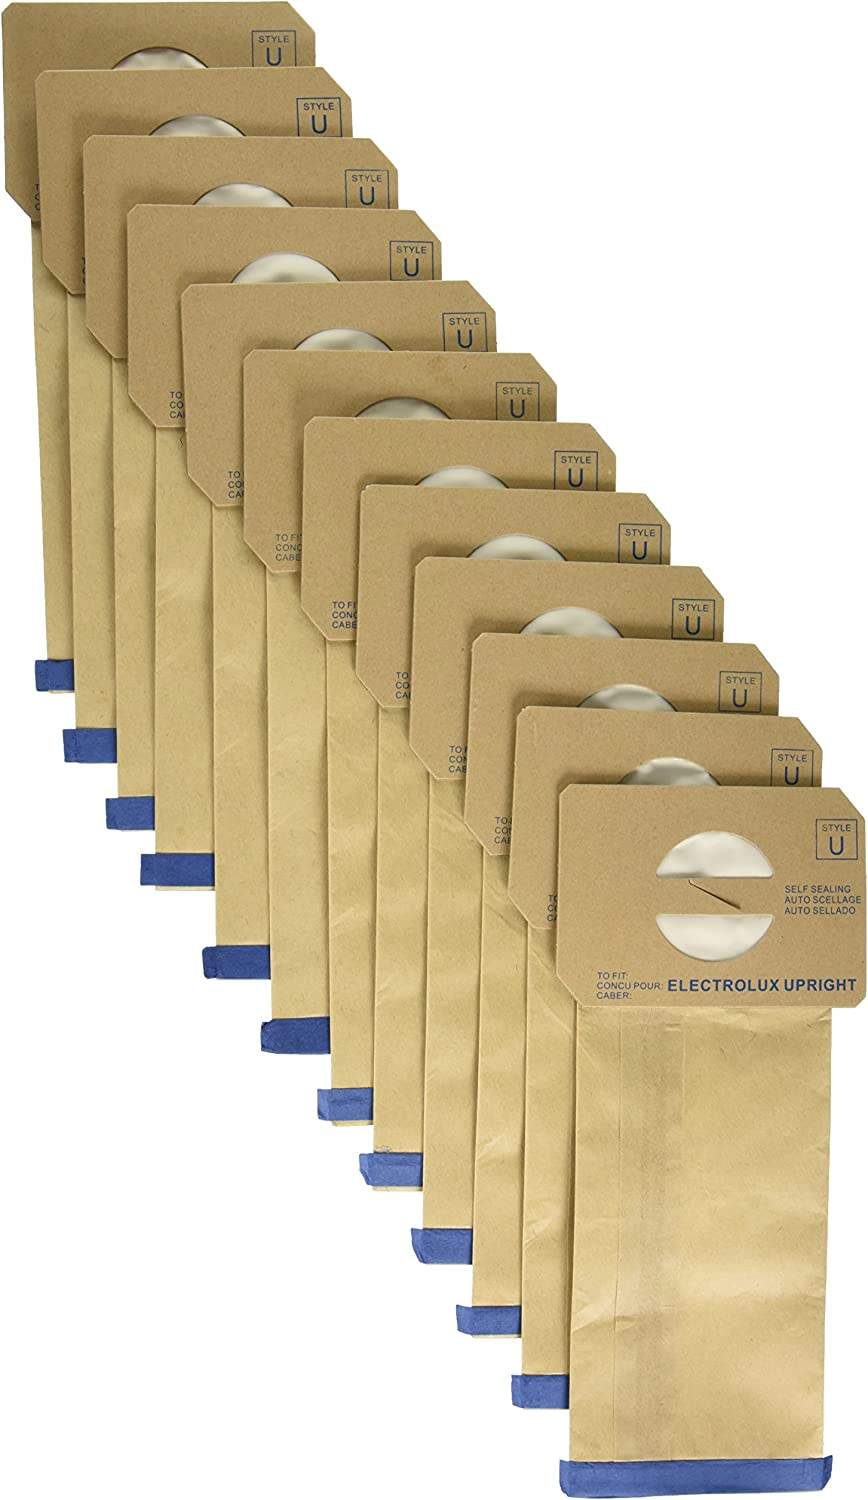 1 X Package of 100 Replacement Aerus / Electrolux Type U Bags - Home And Garden Products